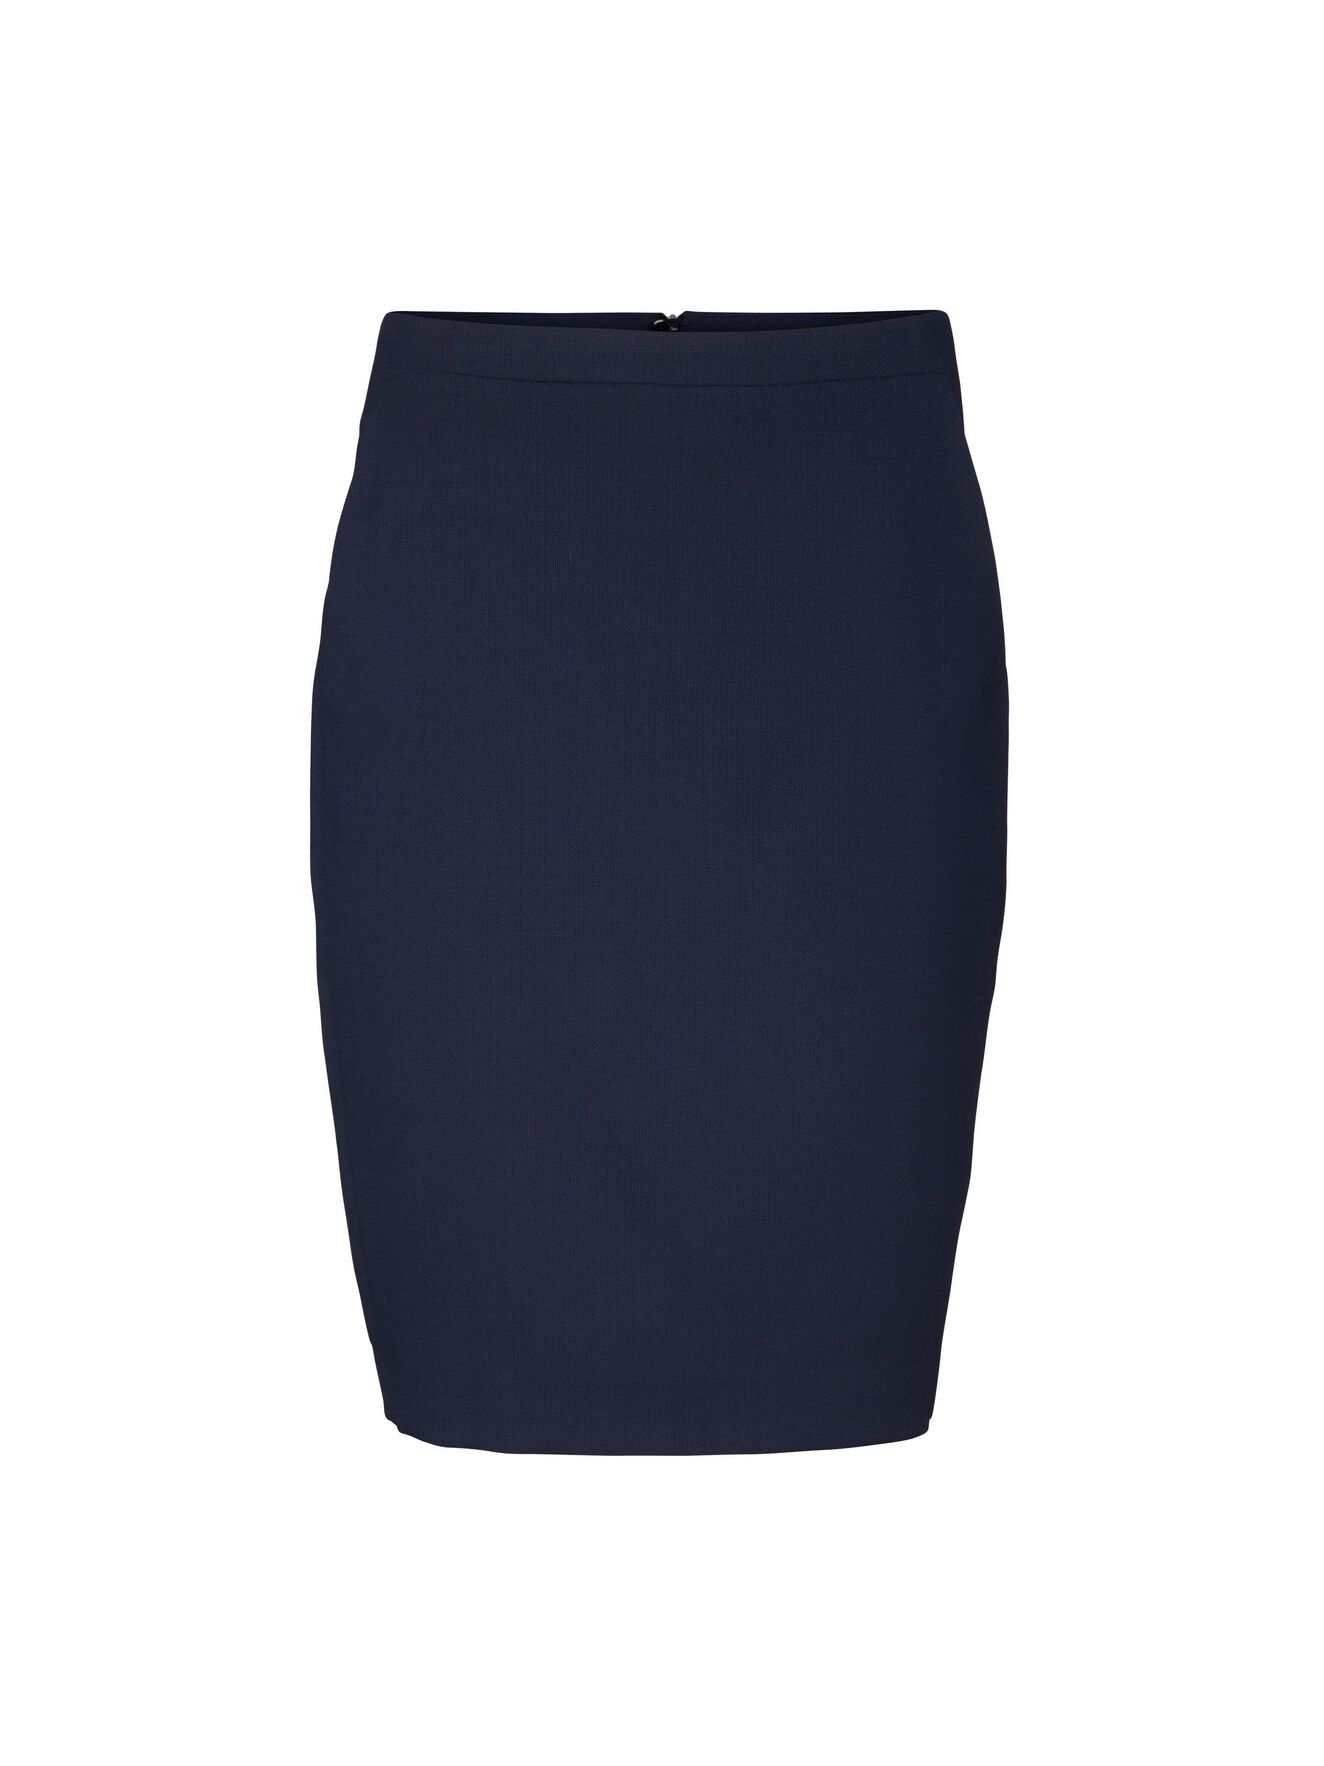 Ariela skirt in Peacoat Blue from Tiger of Sweden